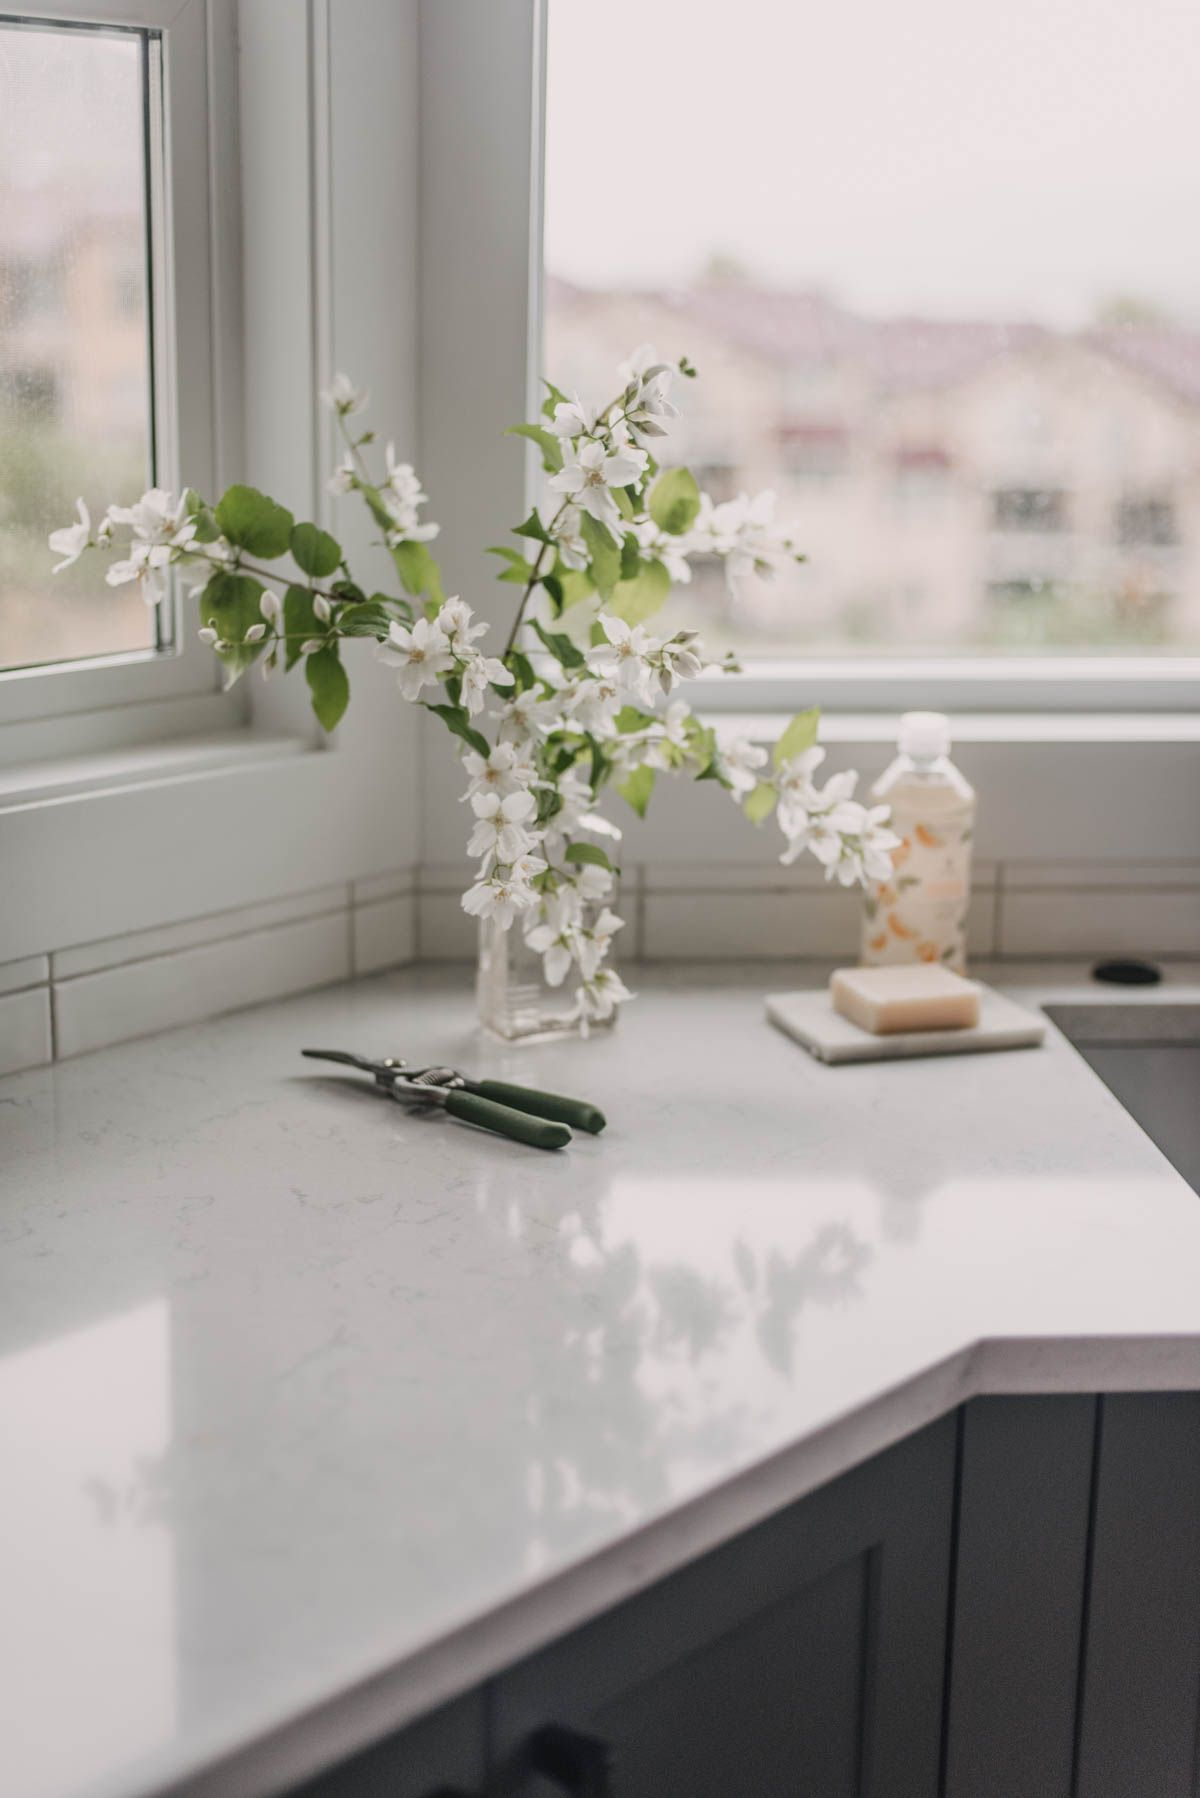 I'm excited to share my summer home tour! Sharing my minimal seasonal decorating (garden blooms!) and some changes we've had due to a flood since our last home tour (new floors!). #SummerHomeTour #SummerDecorIdeas #MinimalDecorIdeas